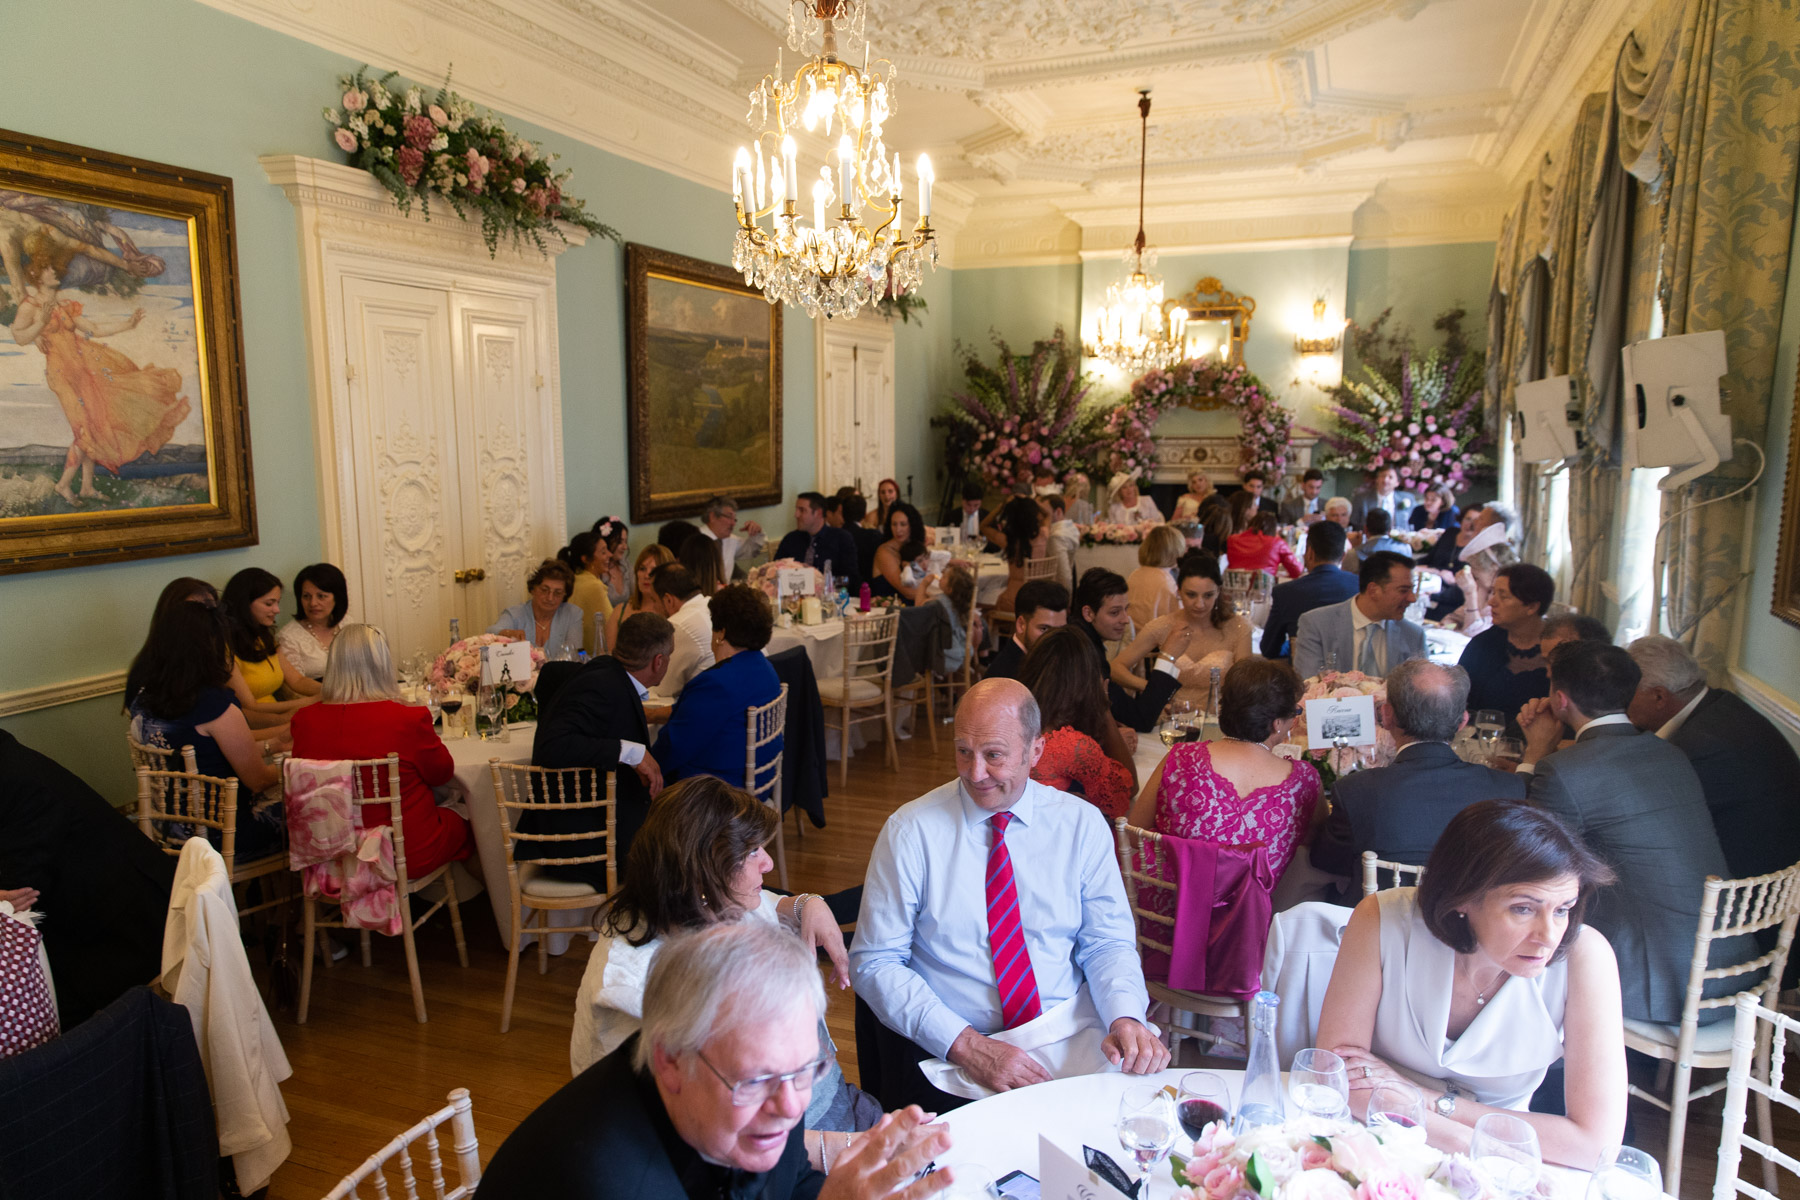 Wedding guests sitting down for relaxed meal